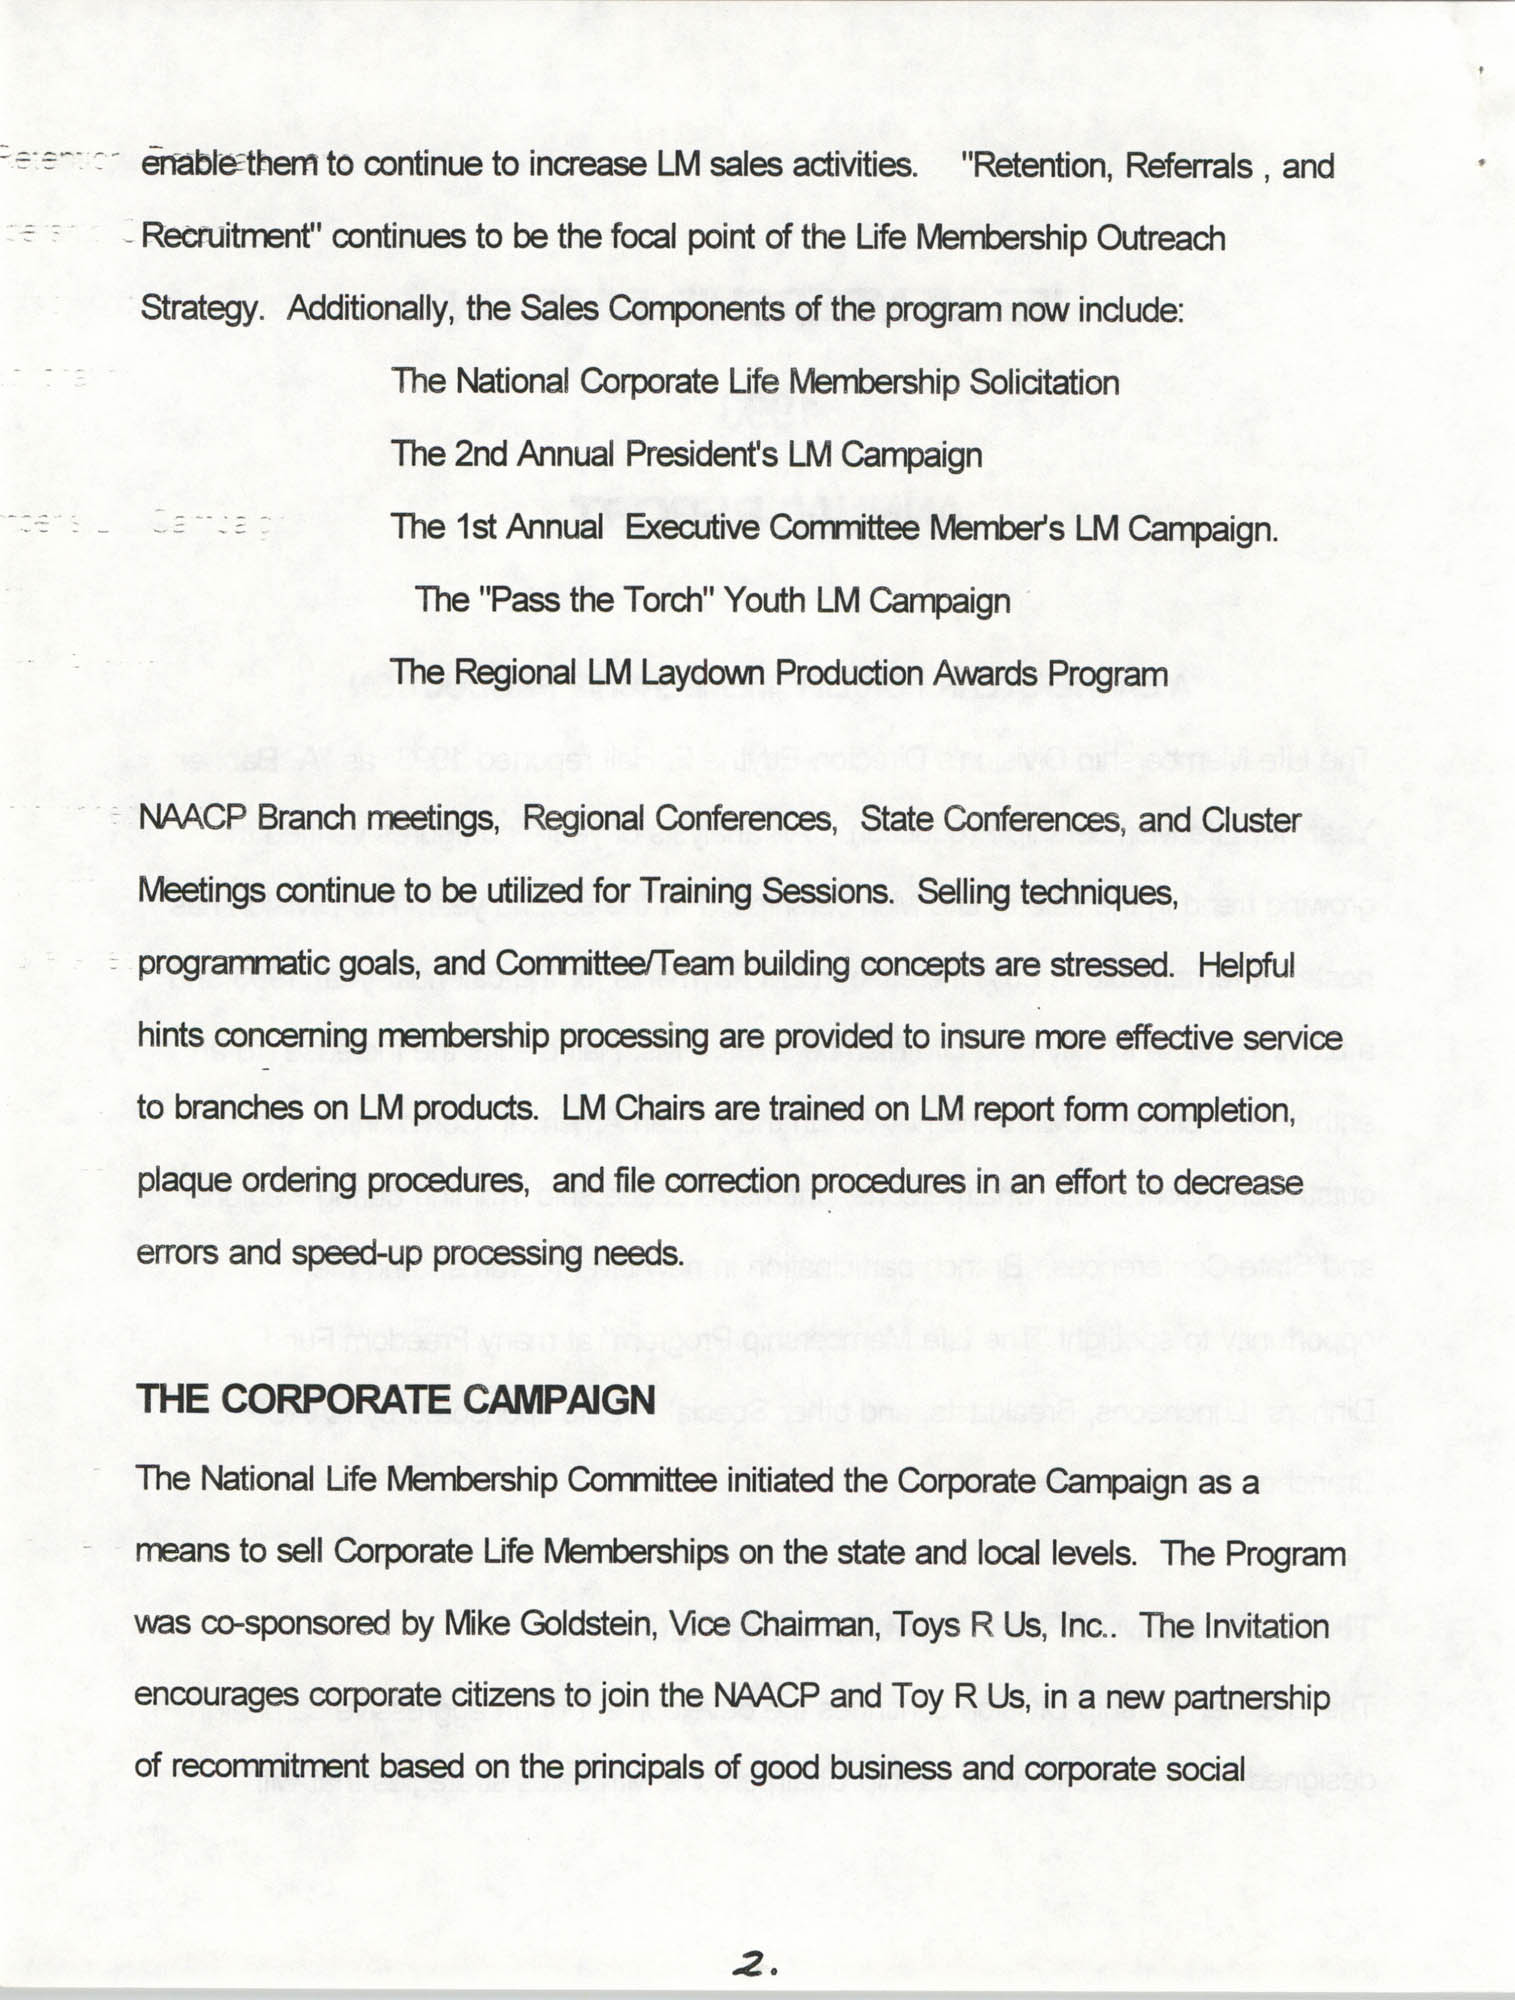 Life Membership Division, 1993 Annual Report, Page 2